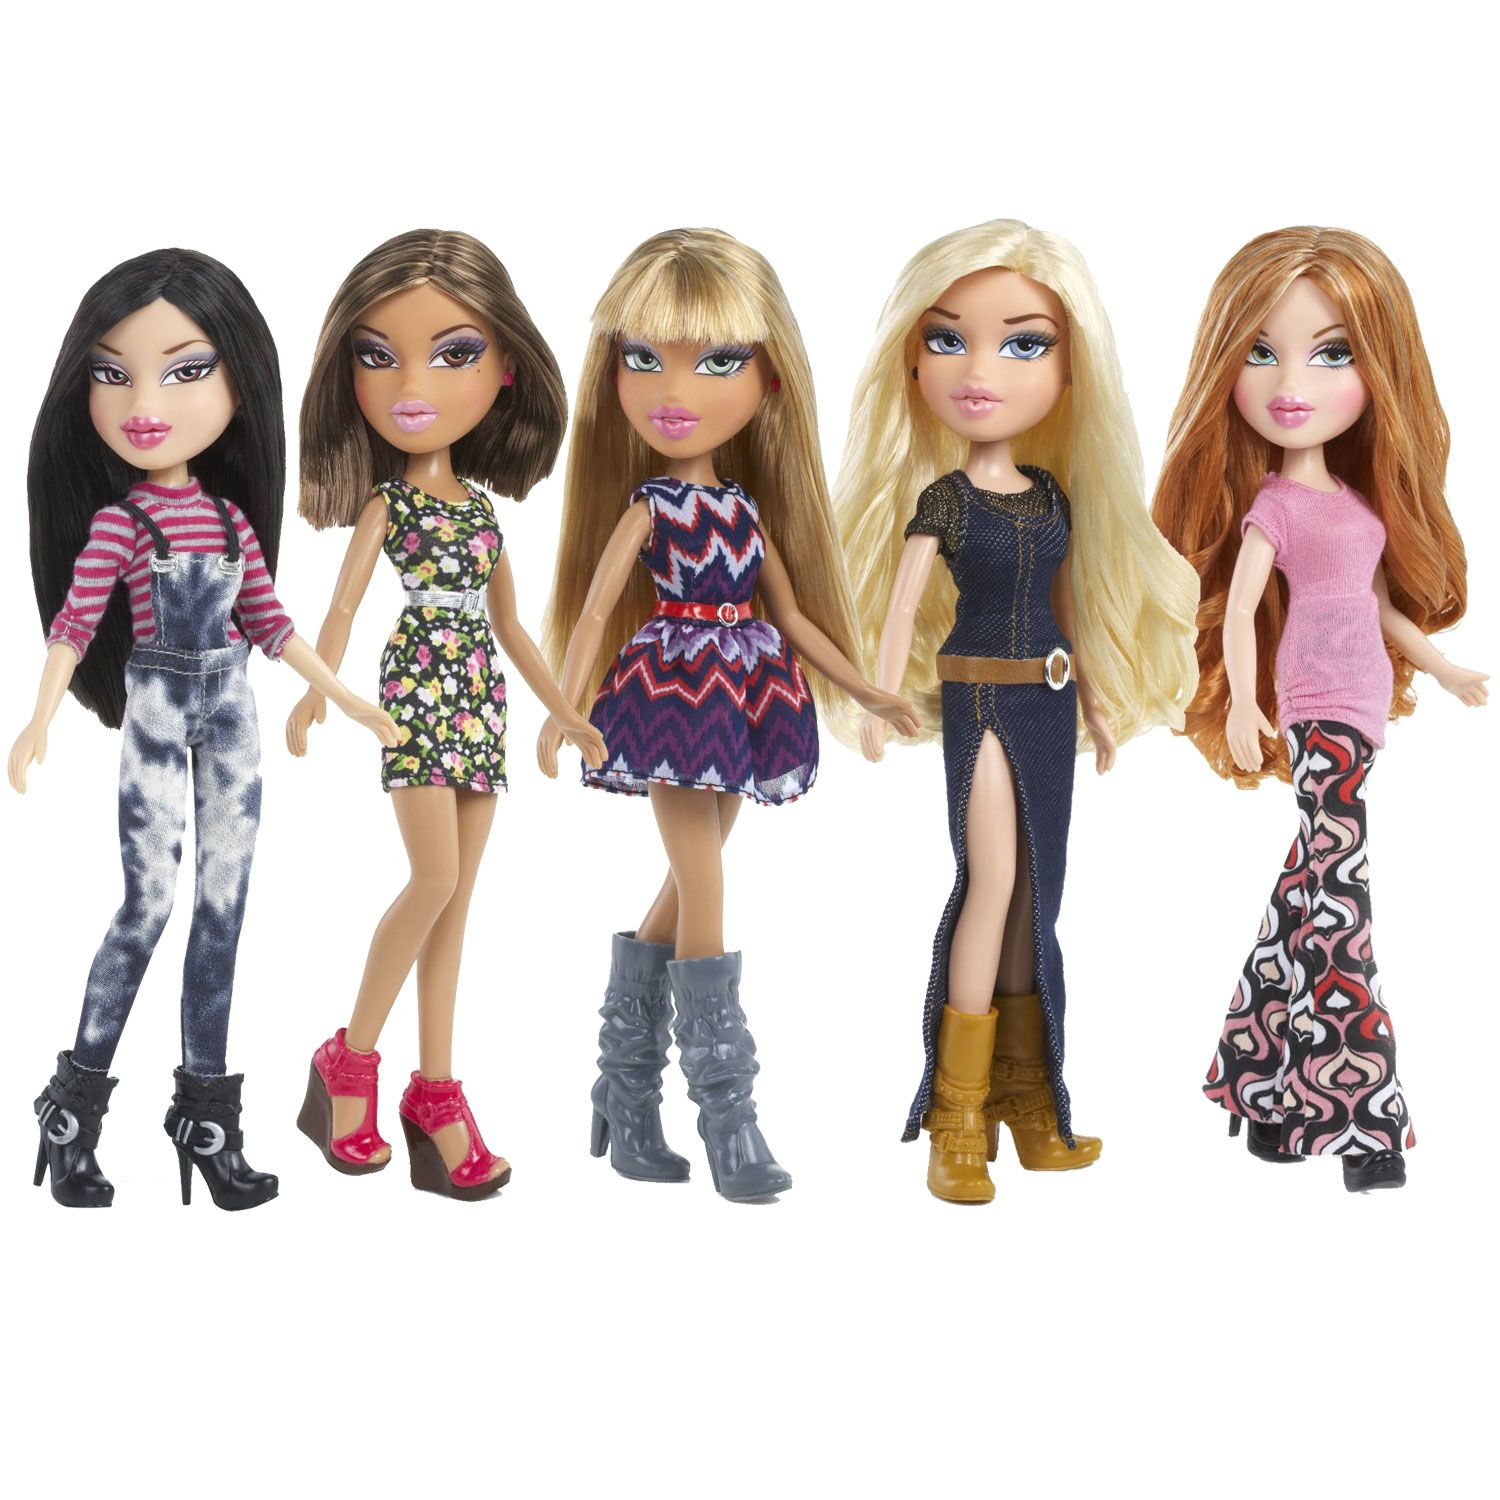 Uncategorized Bratz Girl dolls bratz google search pinterest search